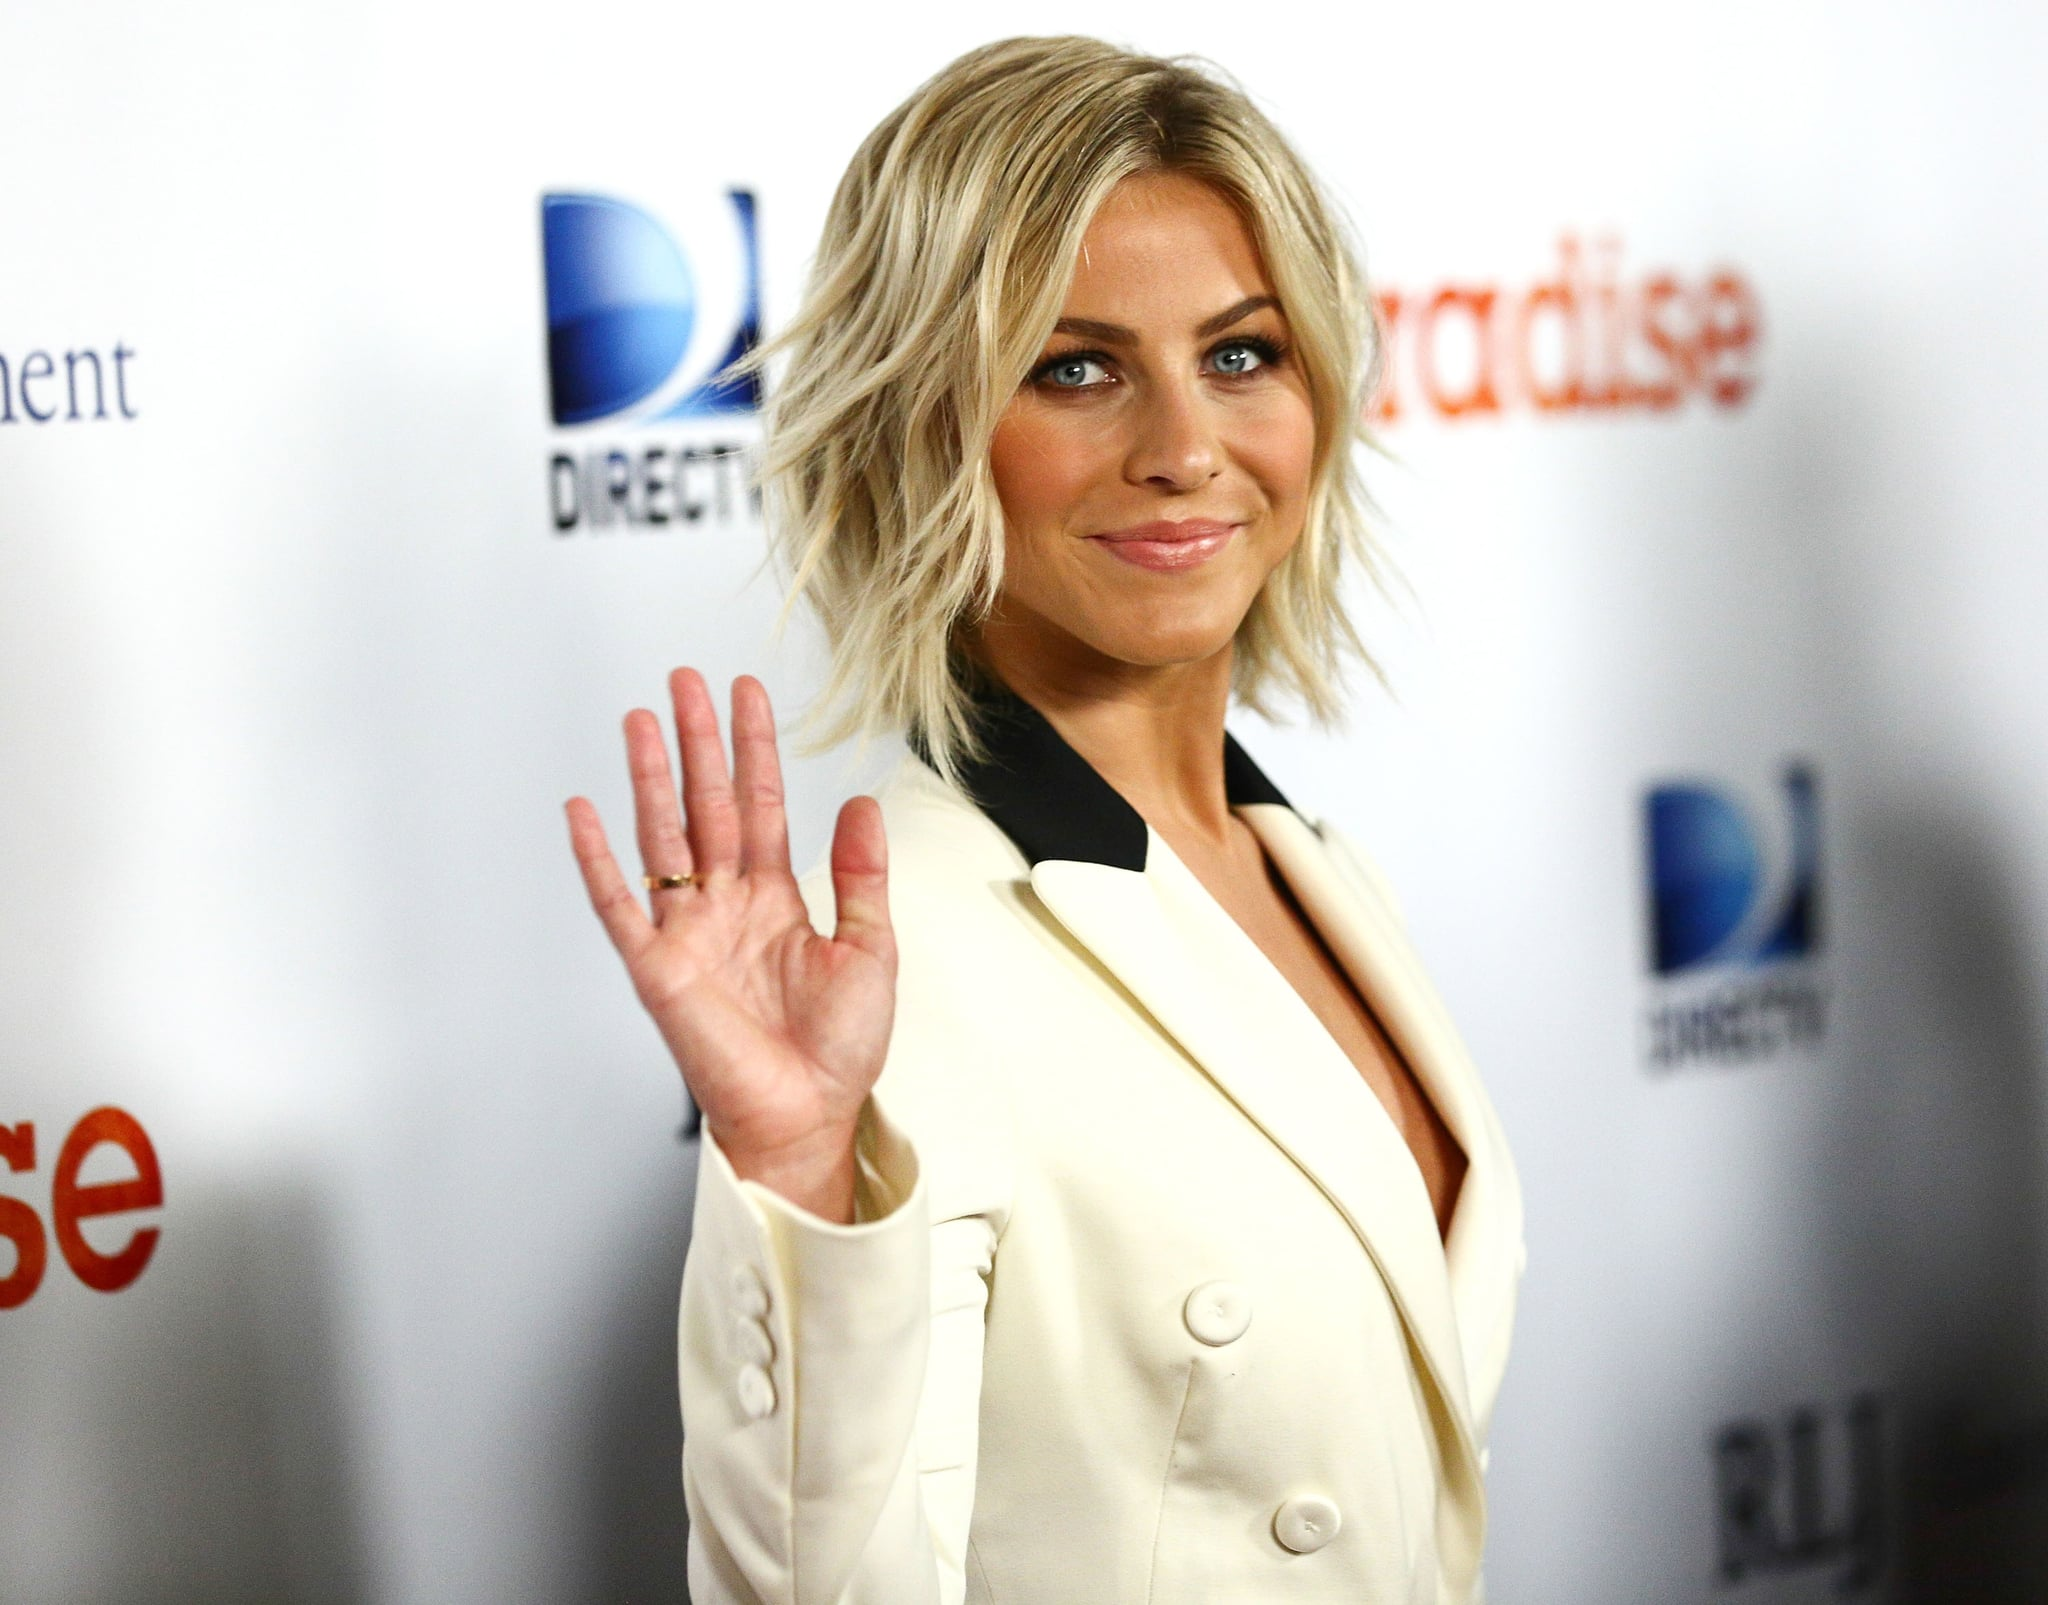 Dancing with the Stars Shocker: Julianne Hough Is Not Returning